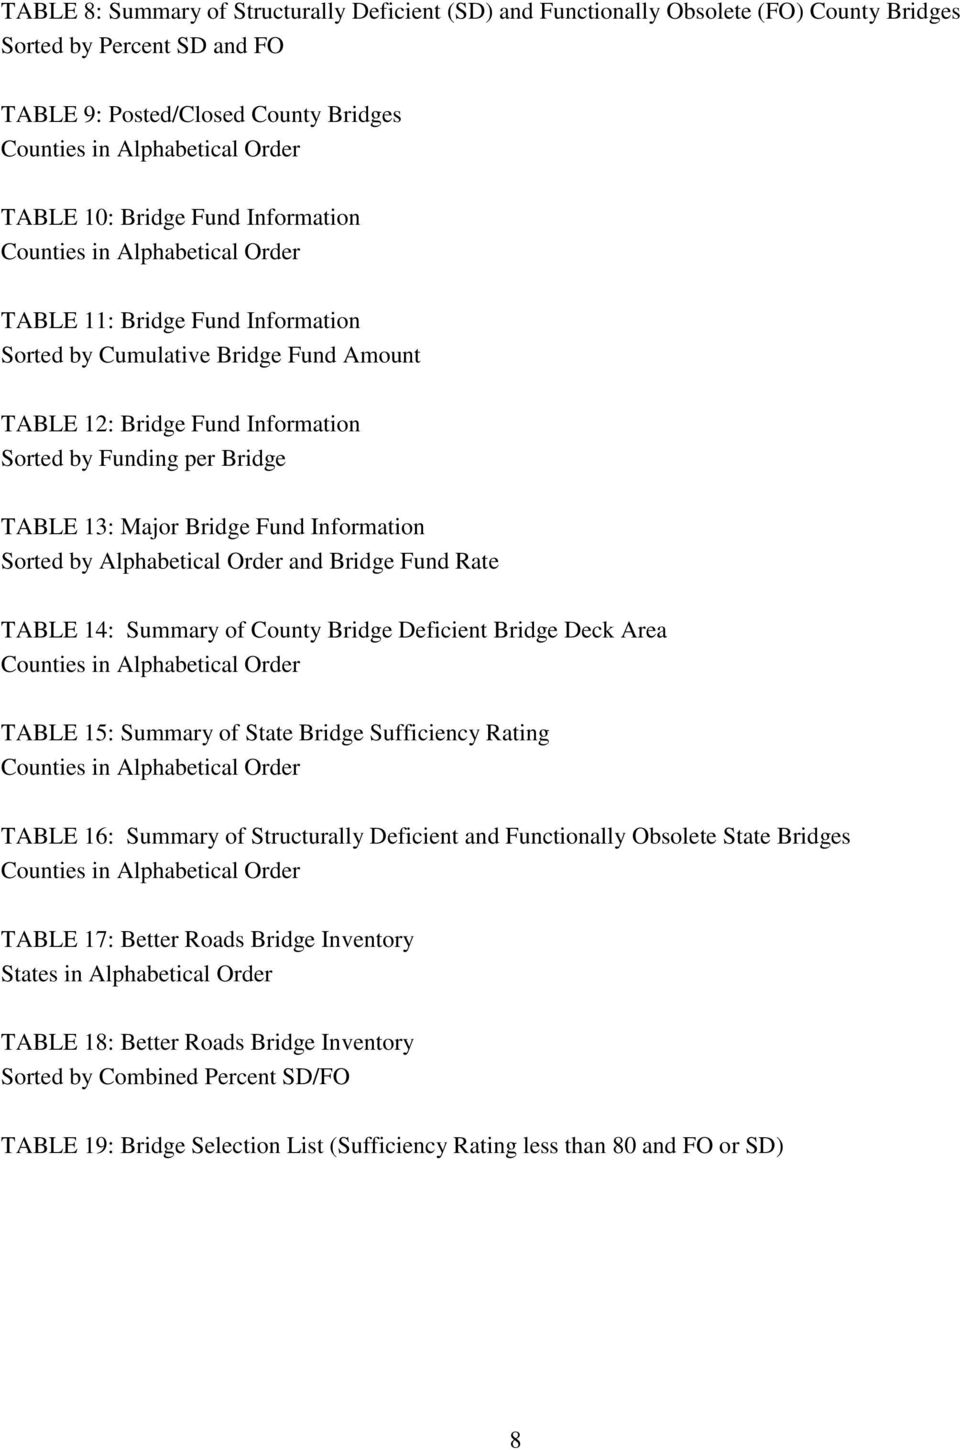 TABLE 13: Major Bridge Fund Information Sorted by Alphabetical Order and Bridge Fund Rate TABLE 14: Summary of County Bridge Deficient Bridge Deck Area Counties in Alphabetical Order TABLE 15: